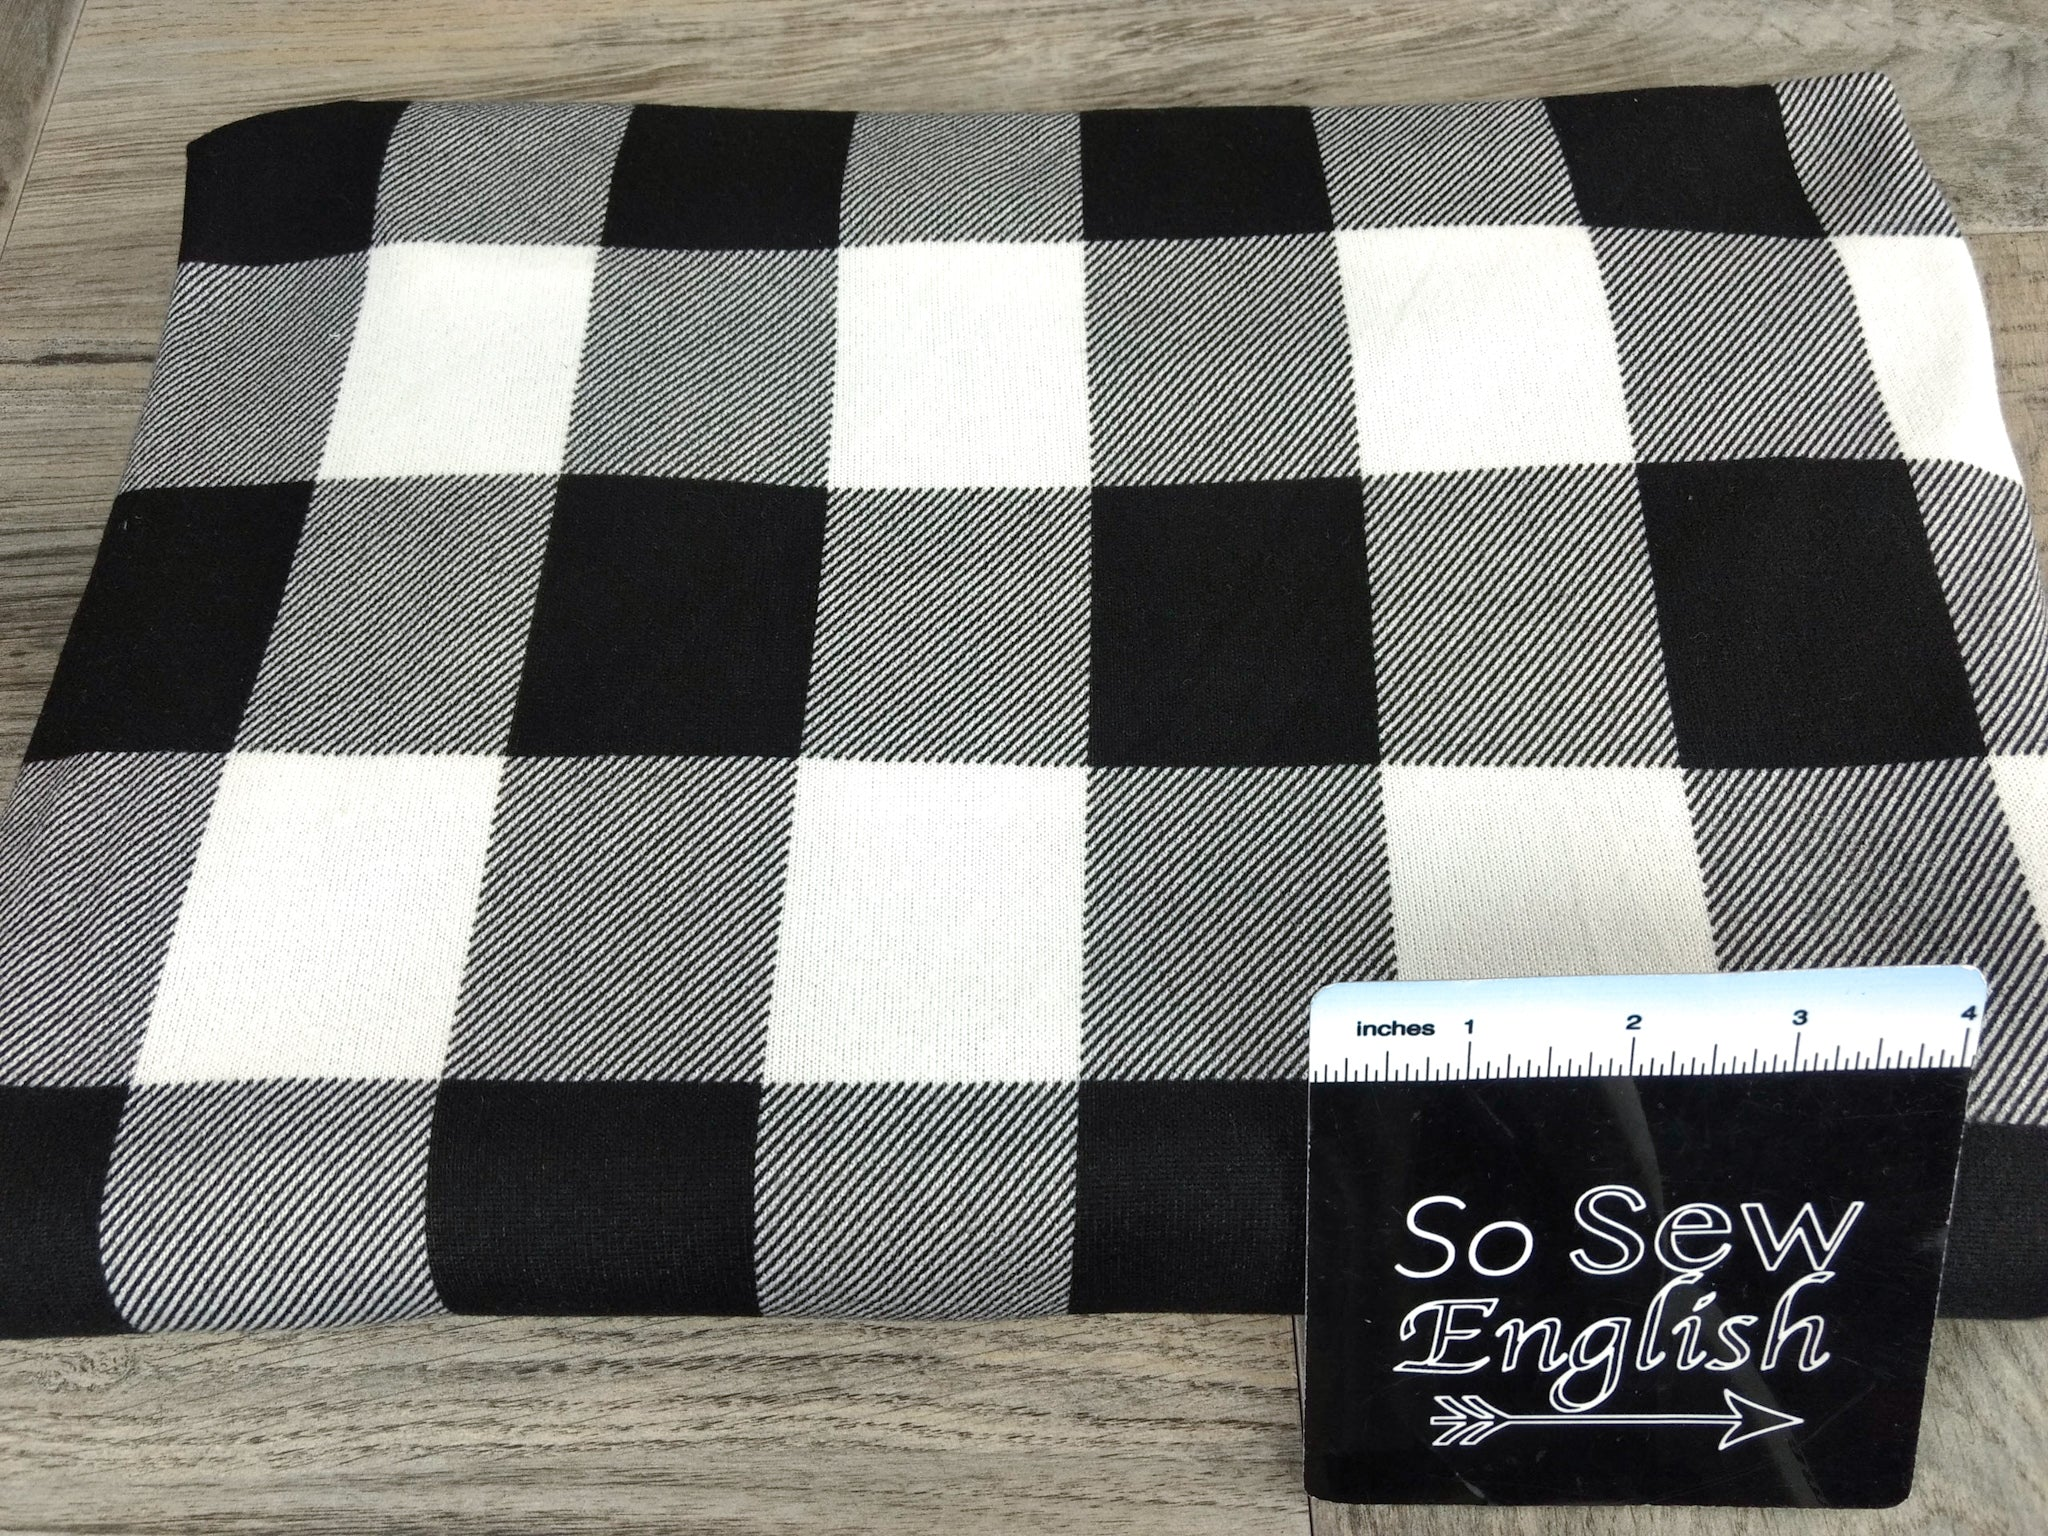 Black/White Buffalo Plaid -Super Brushed Hacci - By The Yard